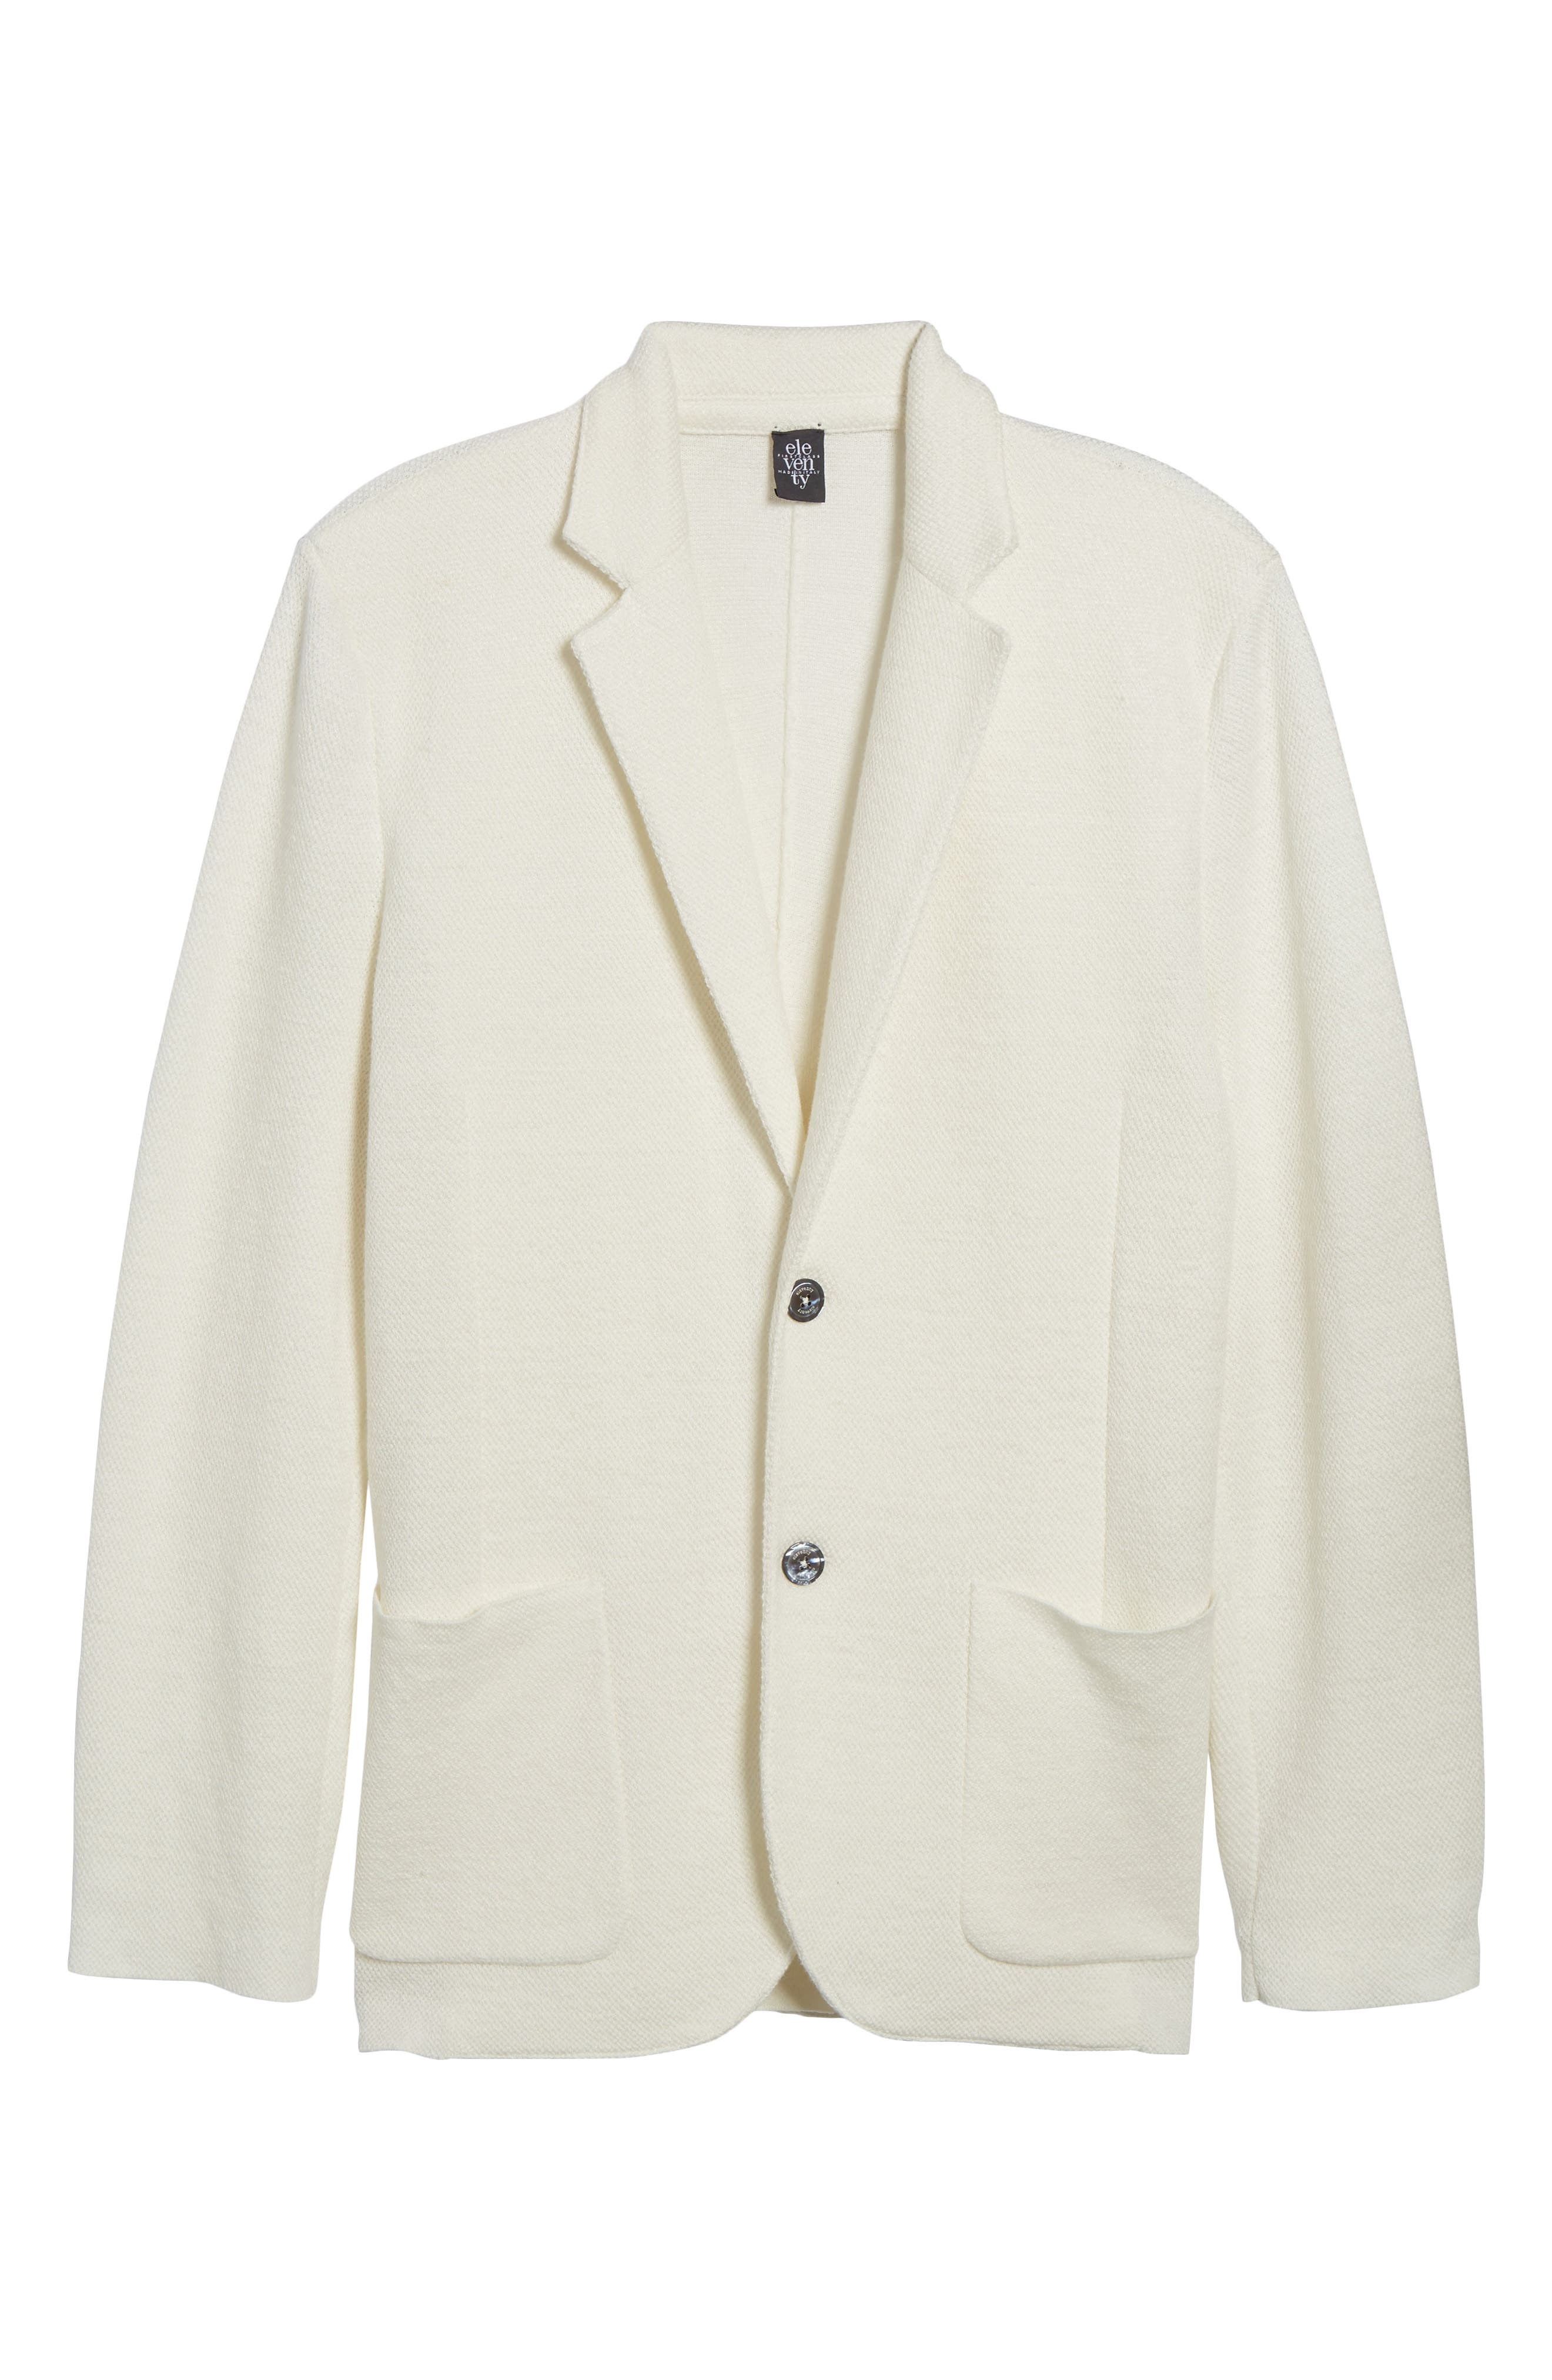 Slim Fit Linen Blend Sweater Jacket,                             Alternate thumbnail 6, color,                             Ivory